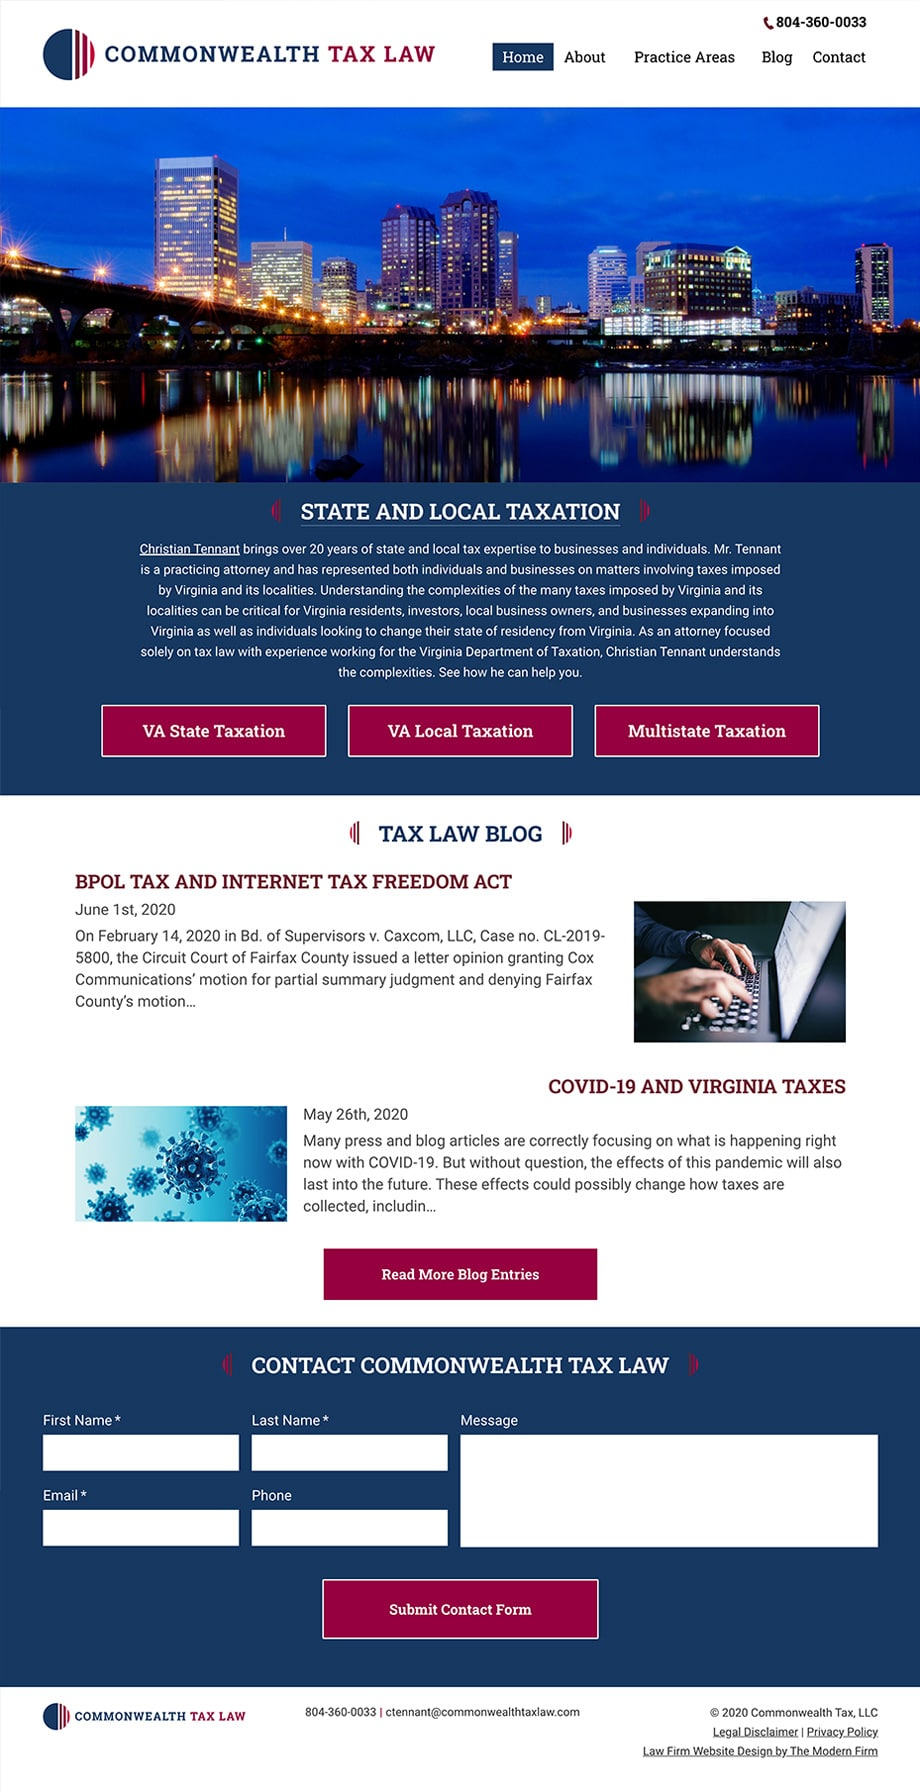 Law Firm Website Design for Commonwealth Tax, LLC